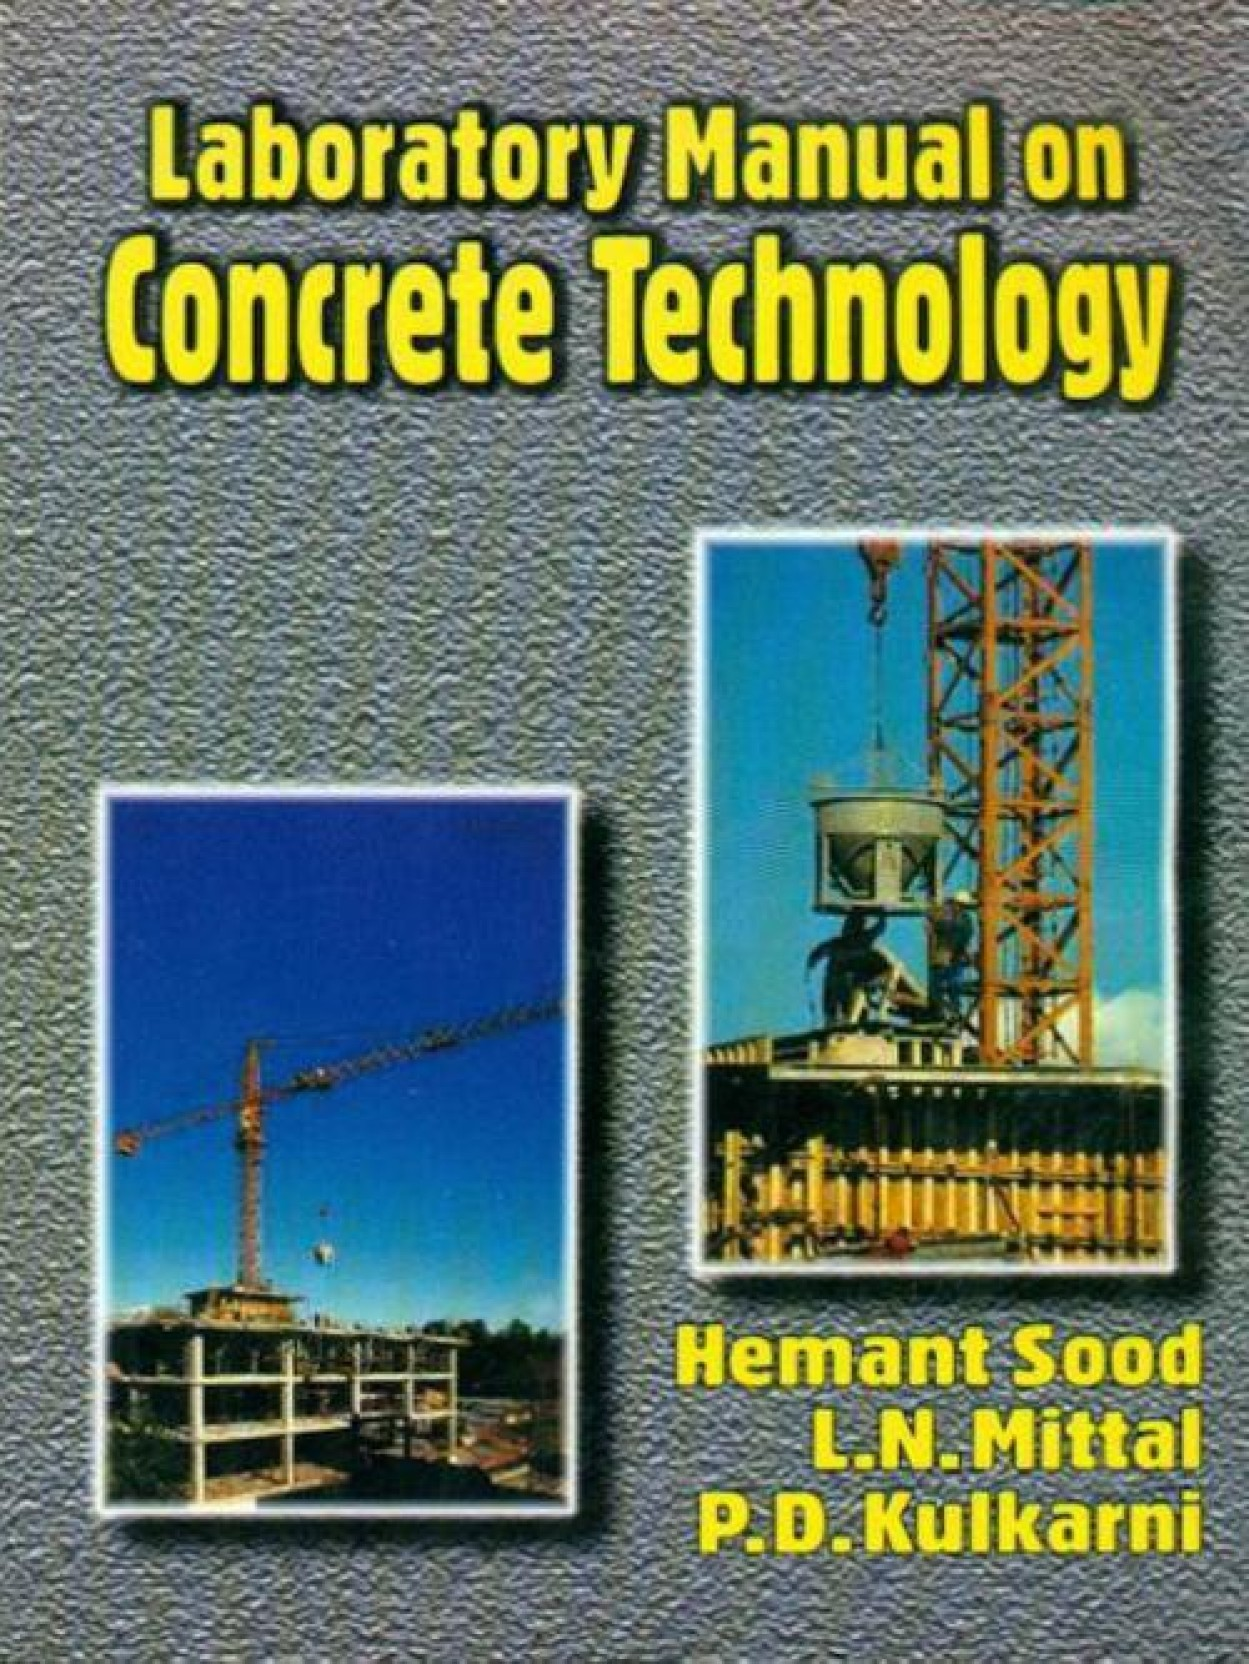 Laboratory Manual on Concrete Technology 1st Edition. ADD TO CART